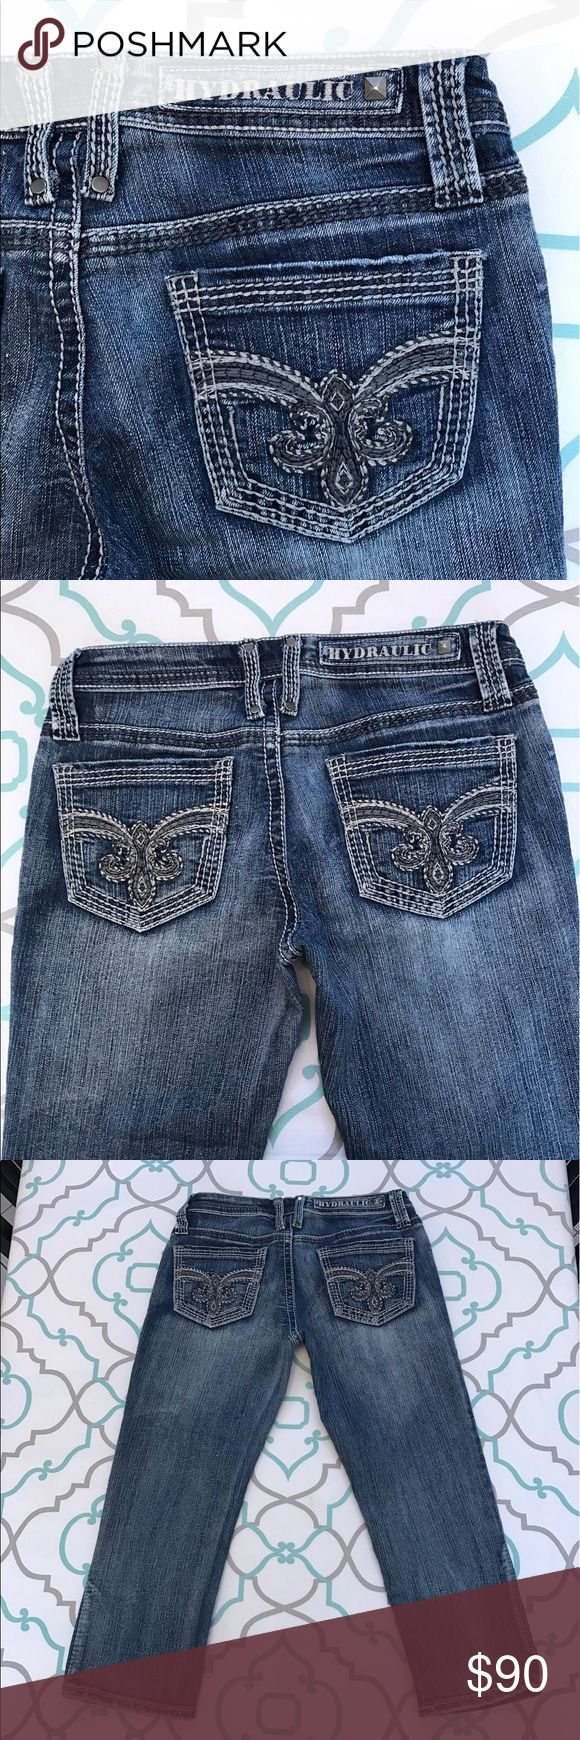 """💙👖Adorable! Hydraulic! Capri Jeans👖💙27 3/4 21"""" 💙👖Adorable Hydraulic Cropped Jeans👖💙 Size 27 (3/4). 21.75"""" Inseam. 7"""" Rise. Low Waist. 13.5"""" Across Back. Amazing Stretch. Washed Out Dark Blue. Medium Dark Color with Heavy Fading. Rows Of Thick Stitching. So Cute!!! Adorable Fleur De Lis. Grey & White Thread. Very Good Used Condition. LOVE! Hydraulic! Ask me any questions! : ) Hydraulic Jeans Ankle & Cropped"""